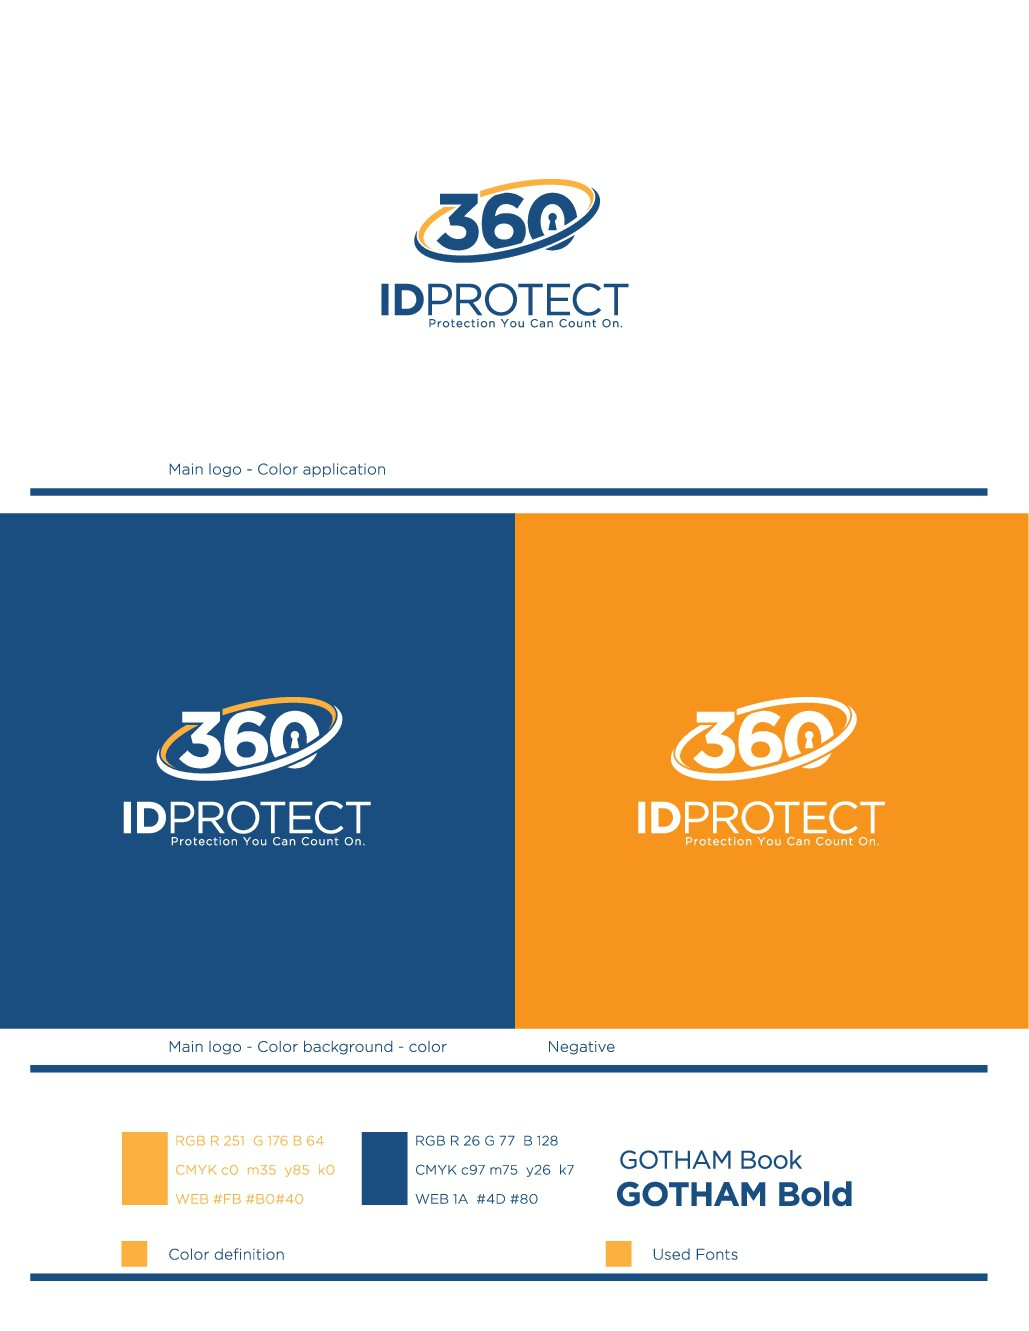 Identity theft product logo that stands out